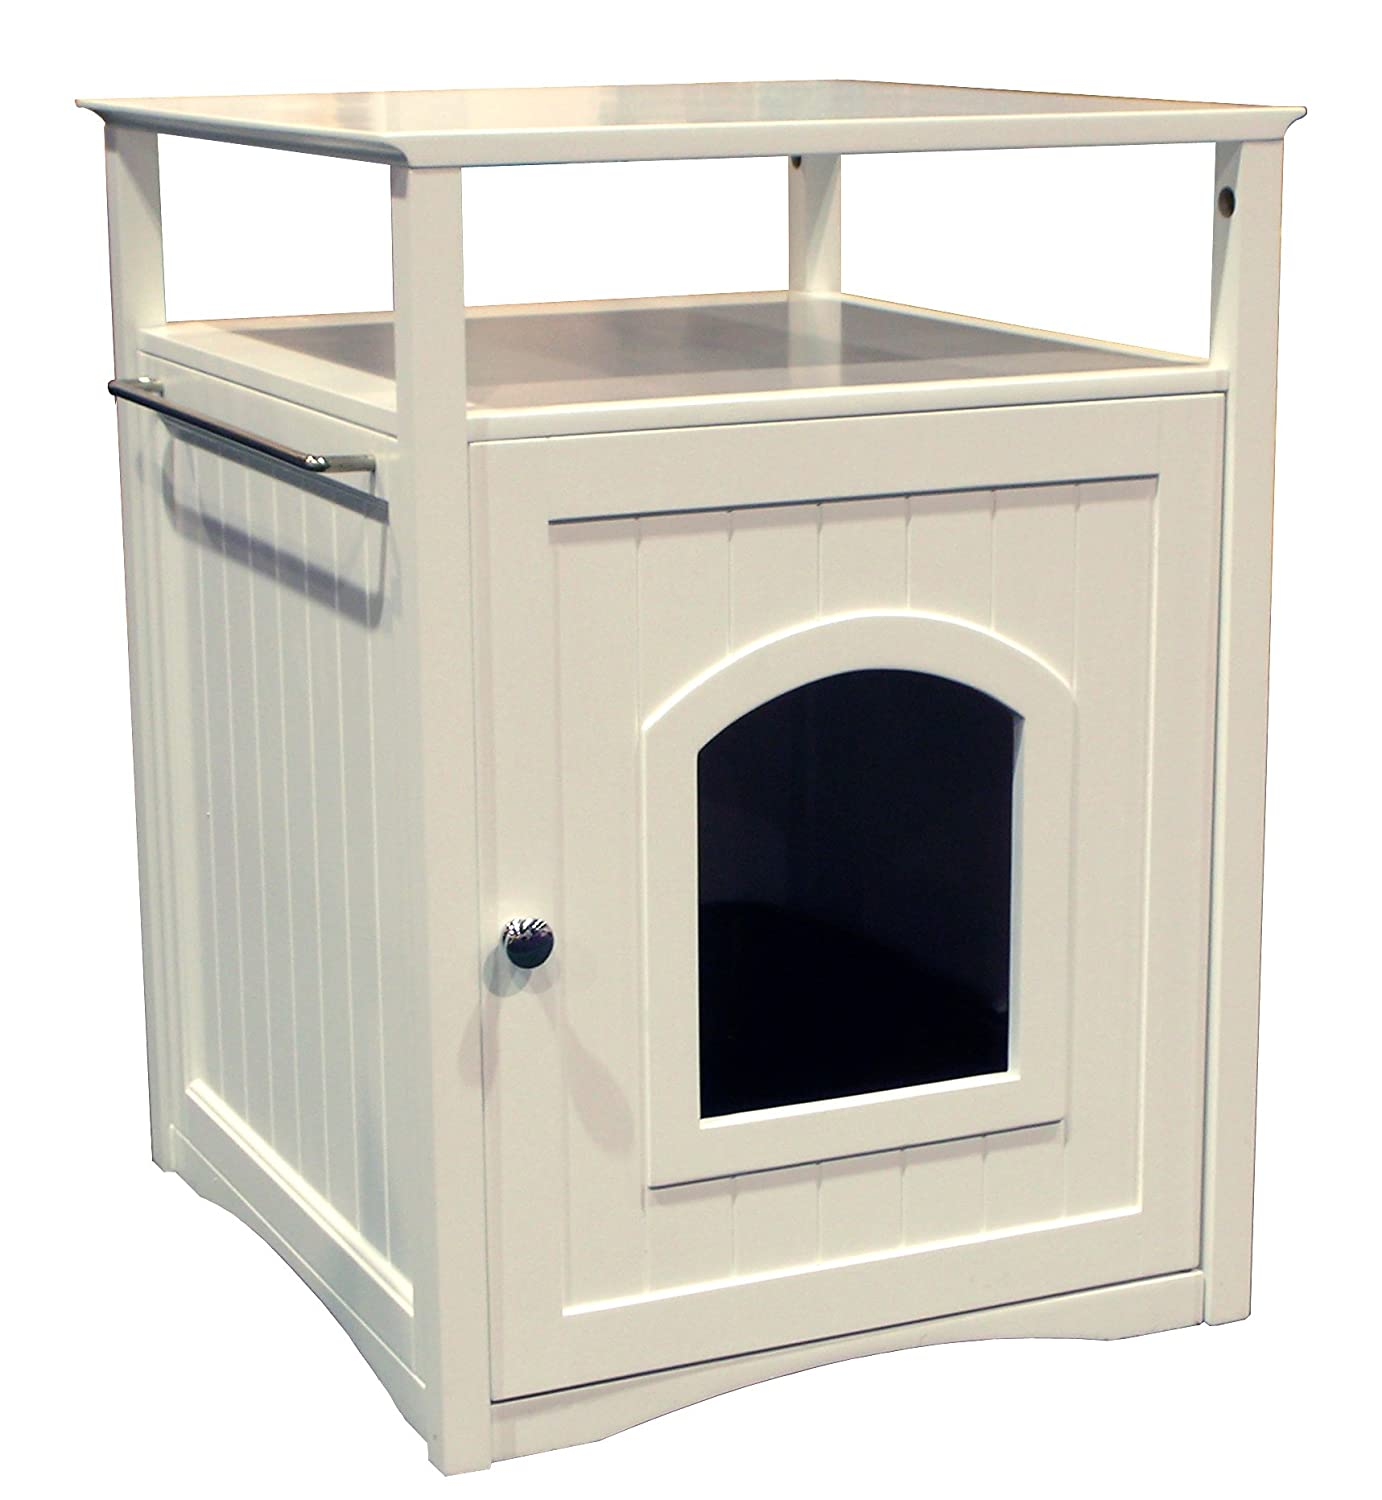 Merveilleux Amazon.com : Merry Pet Cat Washroom/Night Stand Pet House : Cat Houses And  Condos : Pet Supplies